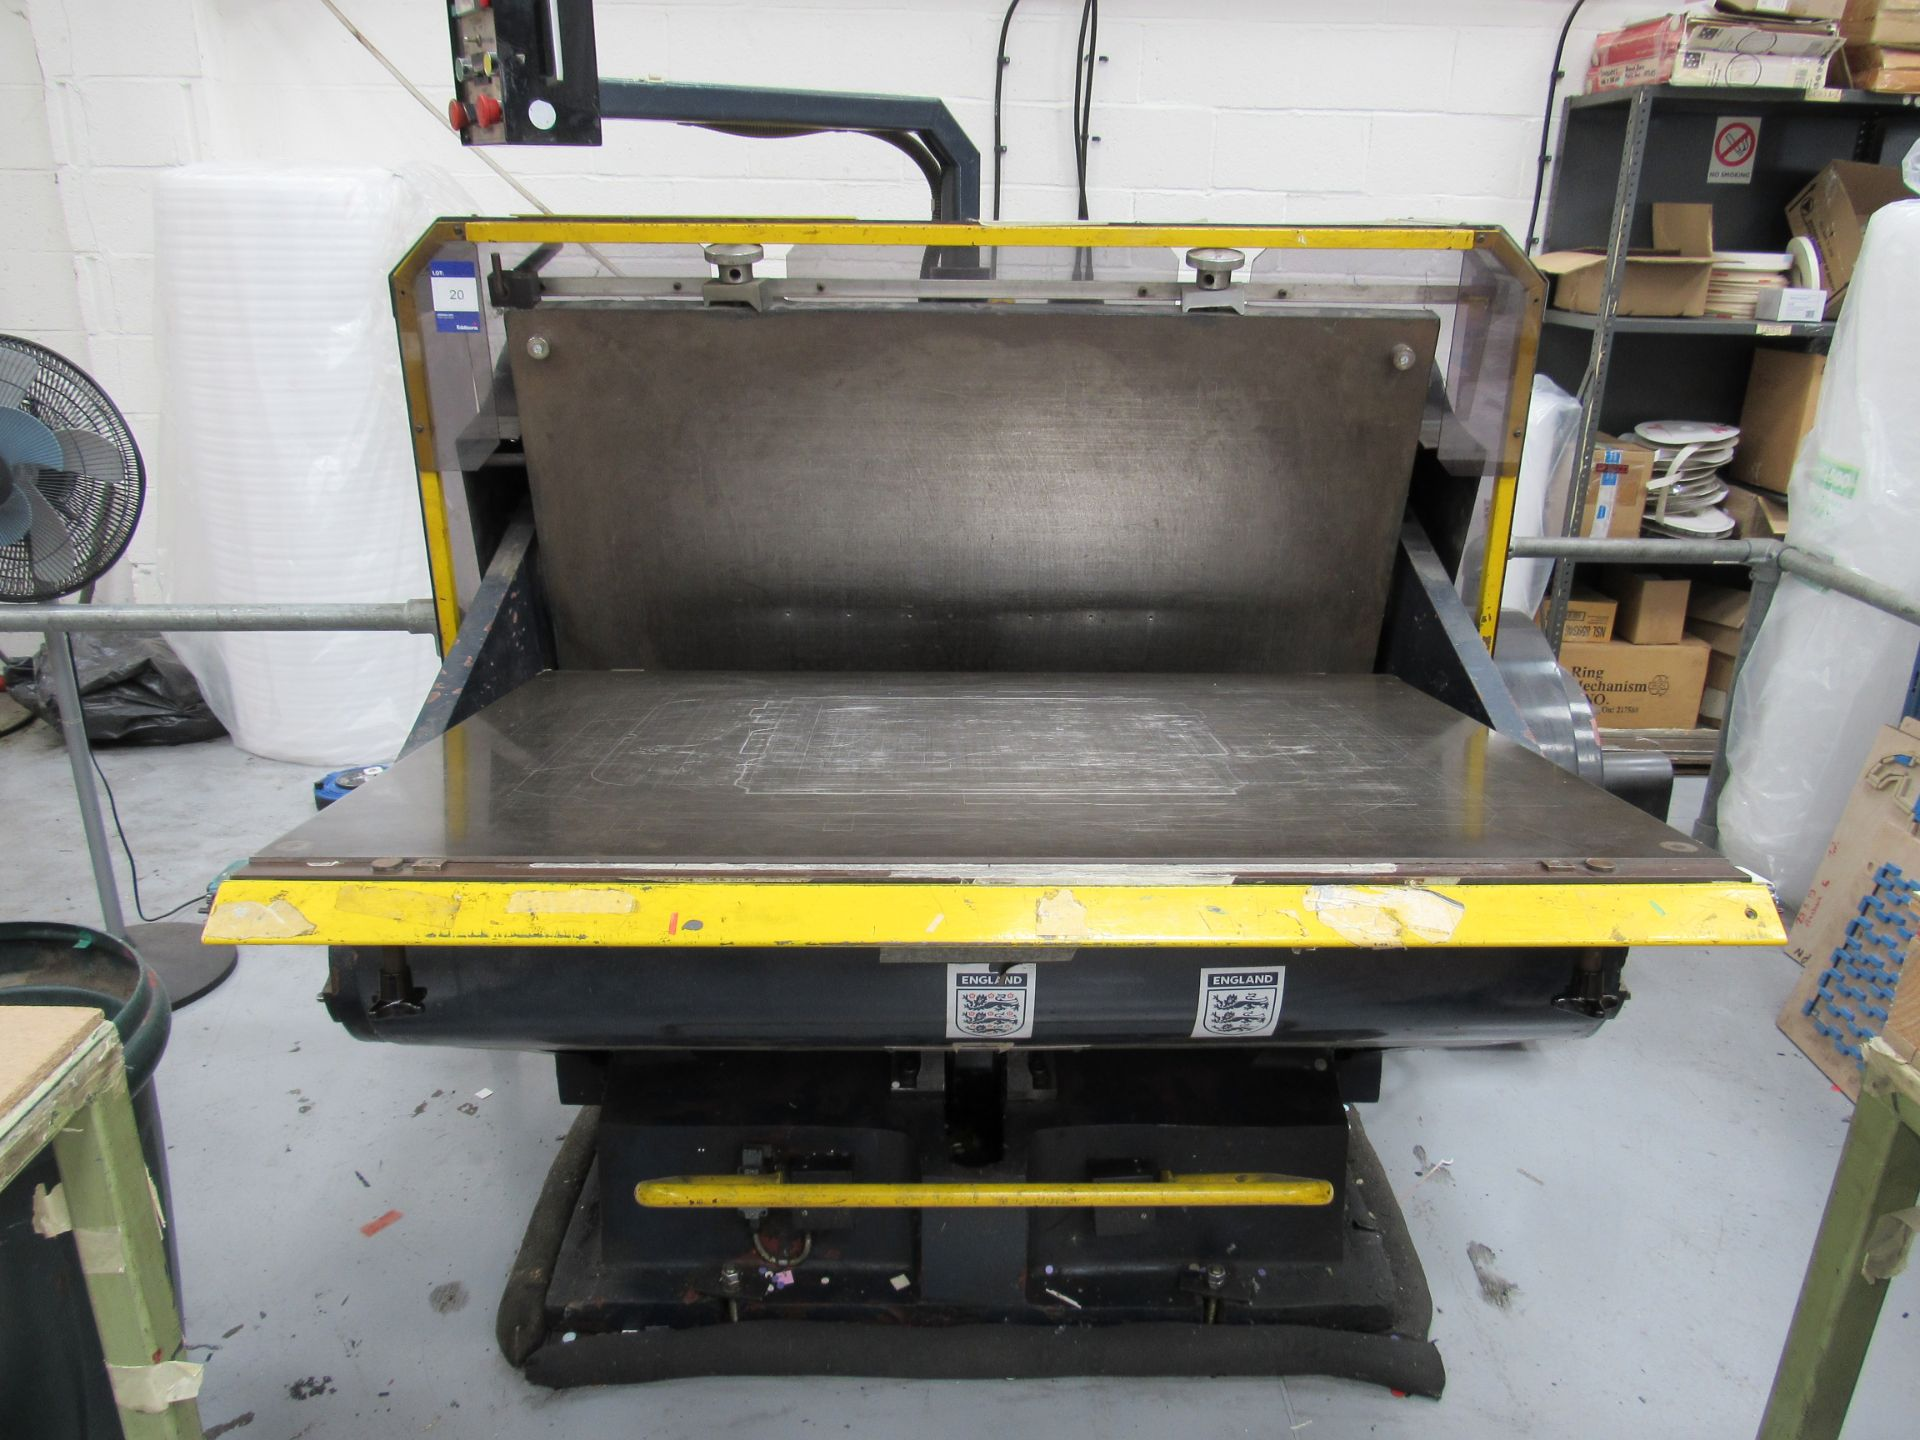 Viking Press VK1330 Cut and Crease Platen 1330 x 960mm Serial Number 97172 - Image 2 of 9